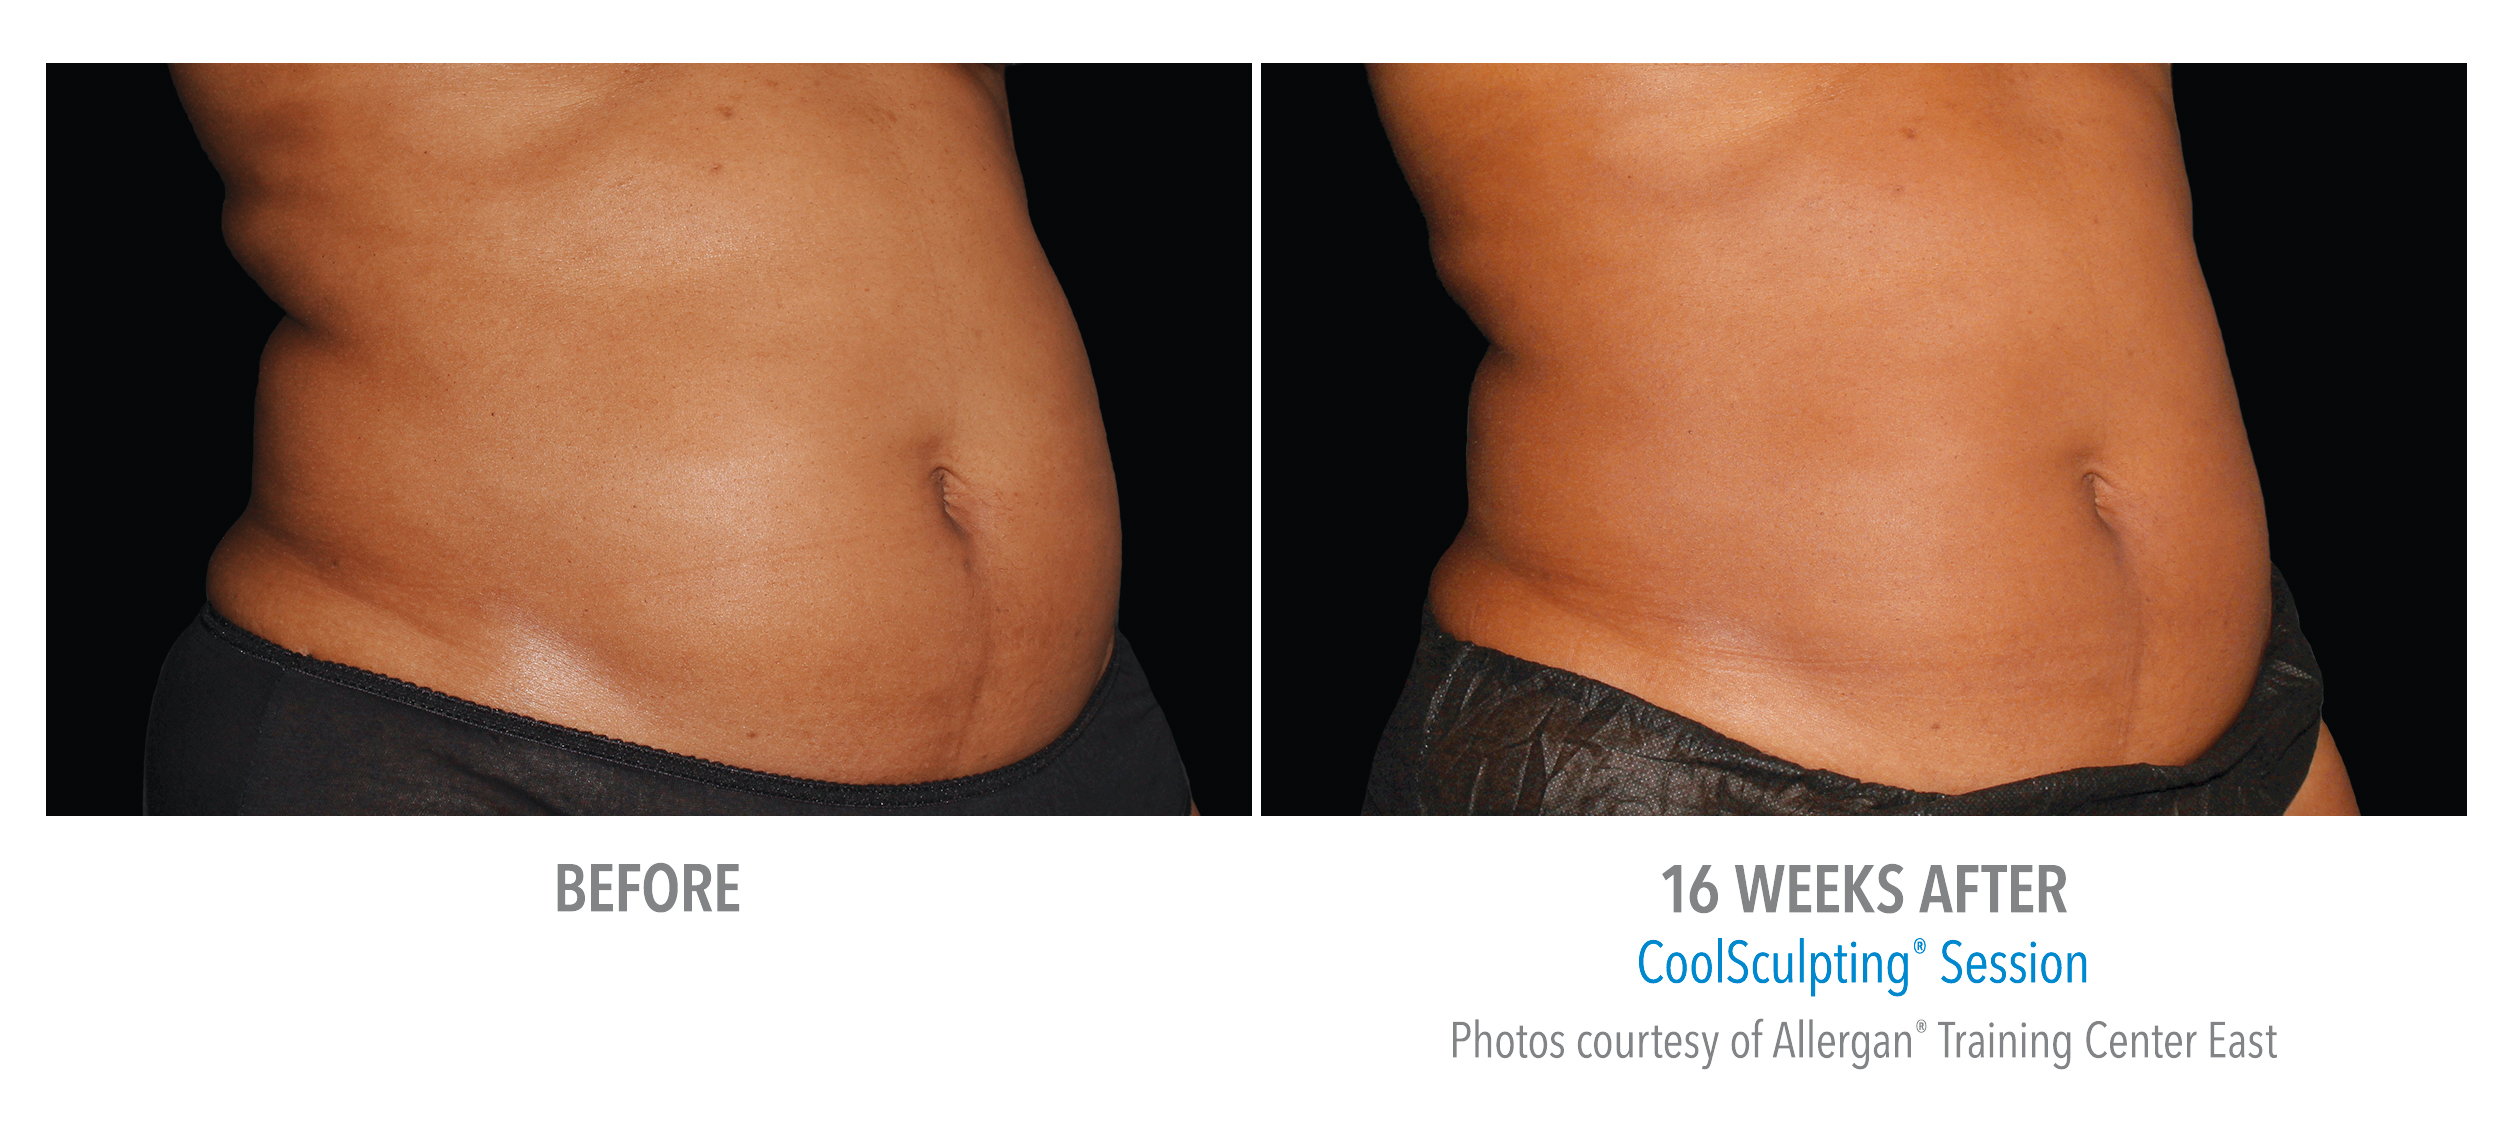 torrance-coolsculpting-back-flank-lower flank-coolsculpting3